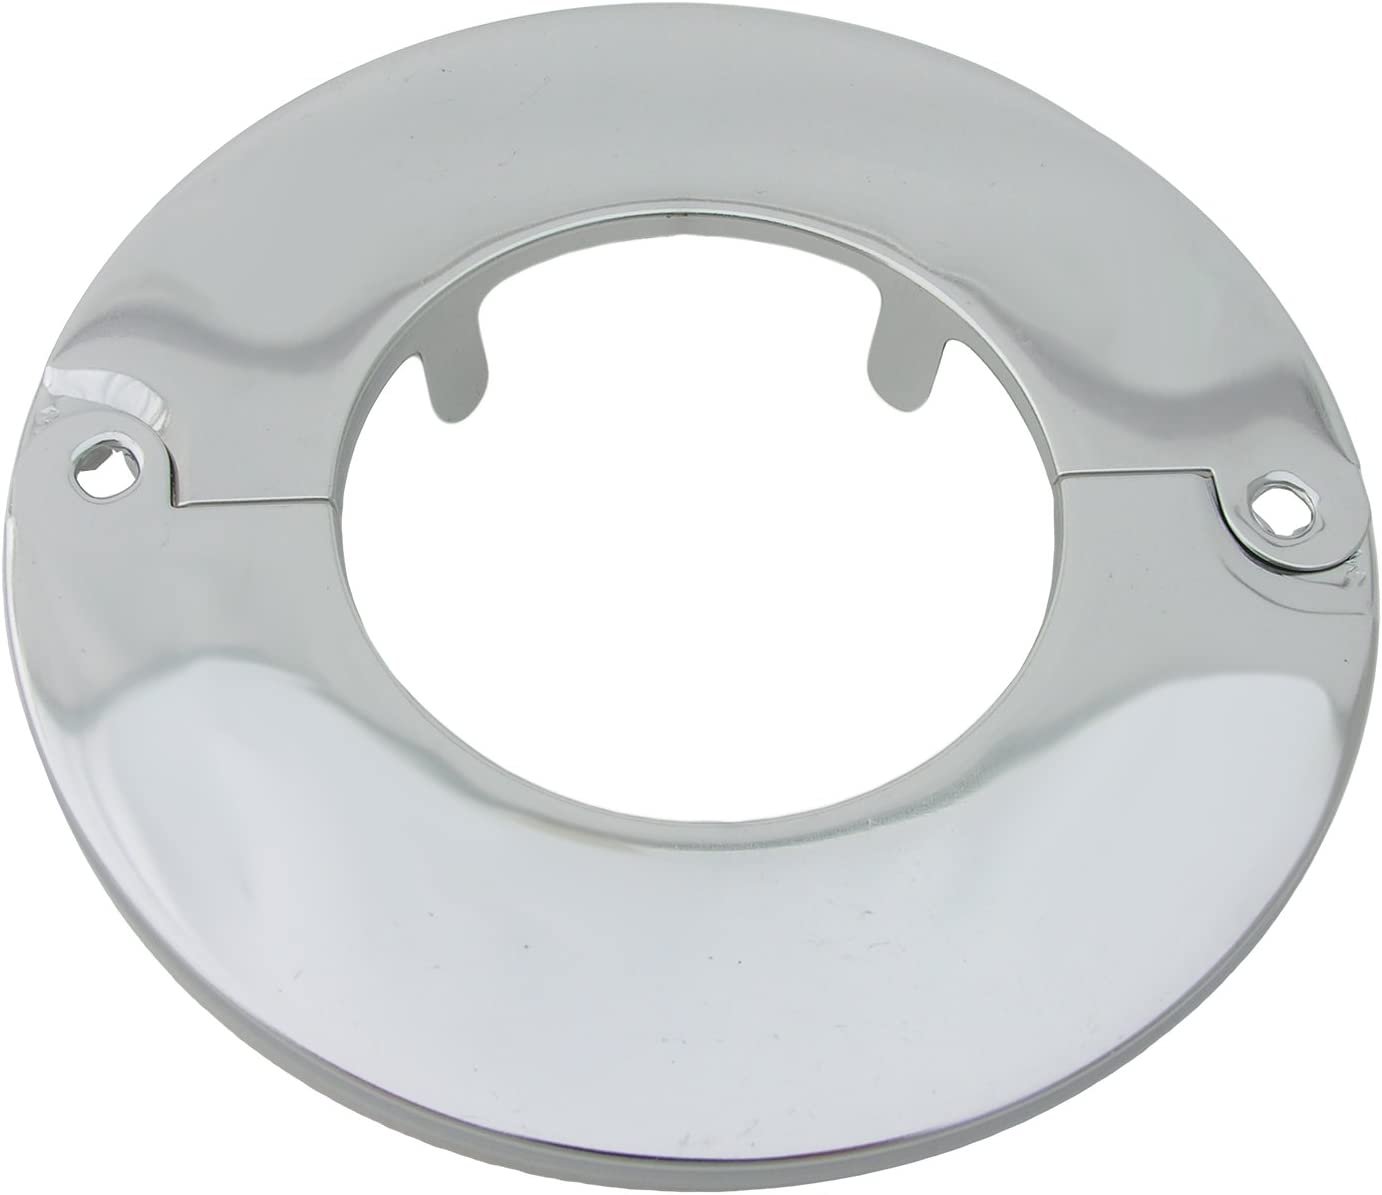 LASCO 03-1563 Chrome Plated Floor and Ceiling Split Flange Fits 2-Inch Iron Pipe